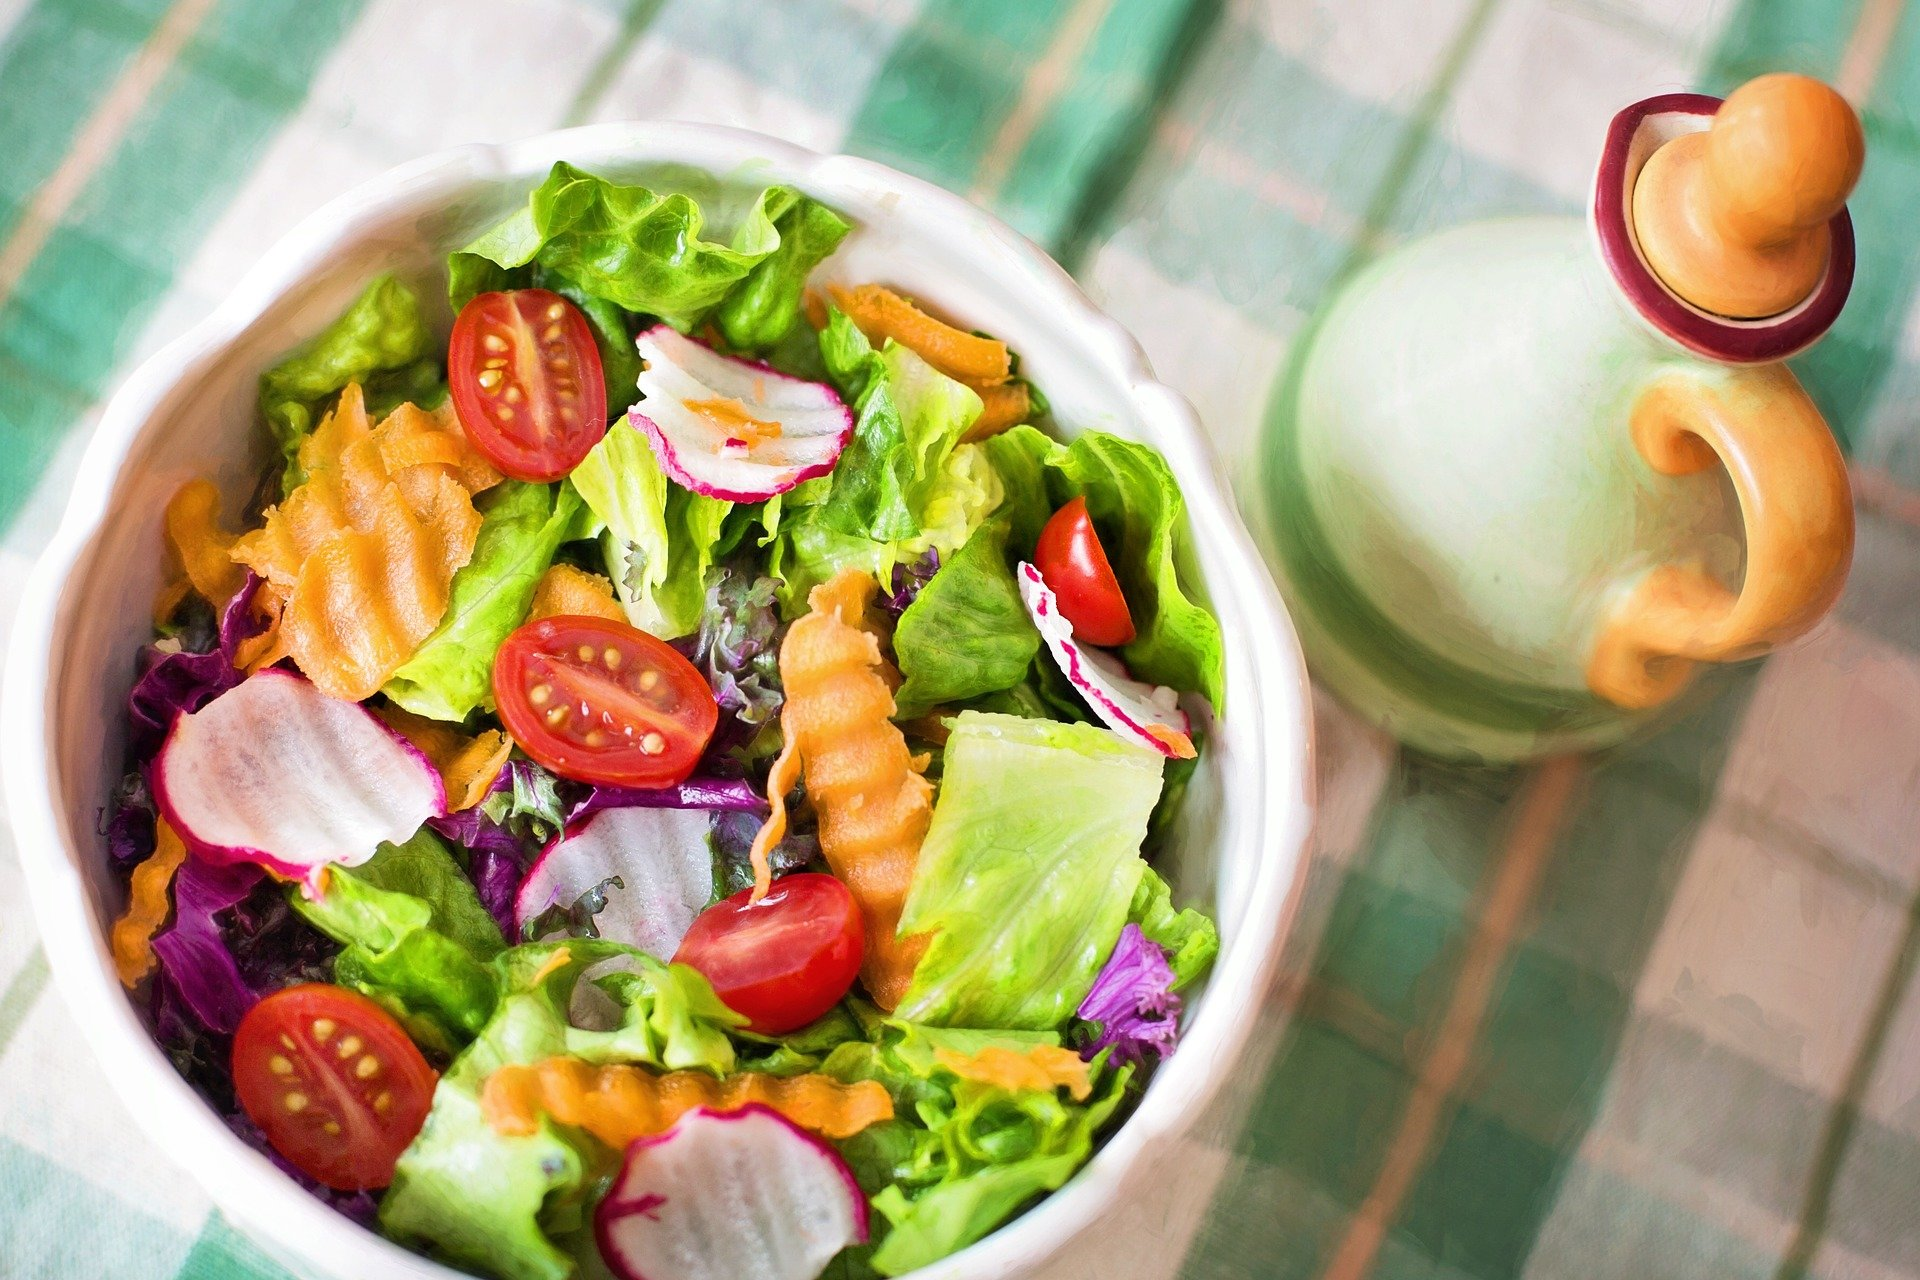 Could Eating Leafy Greens Every Day Ward Off Dementia